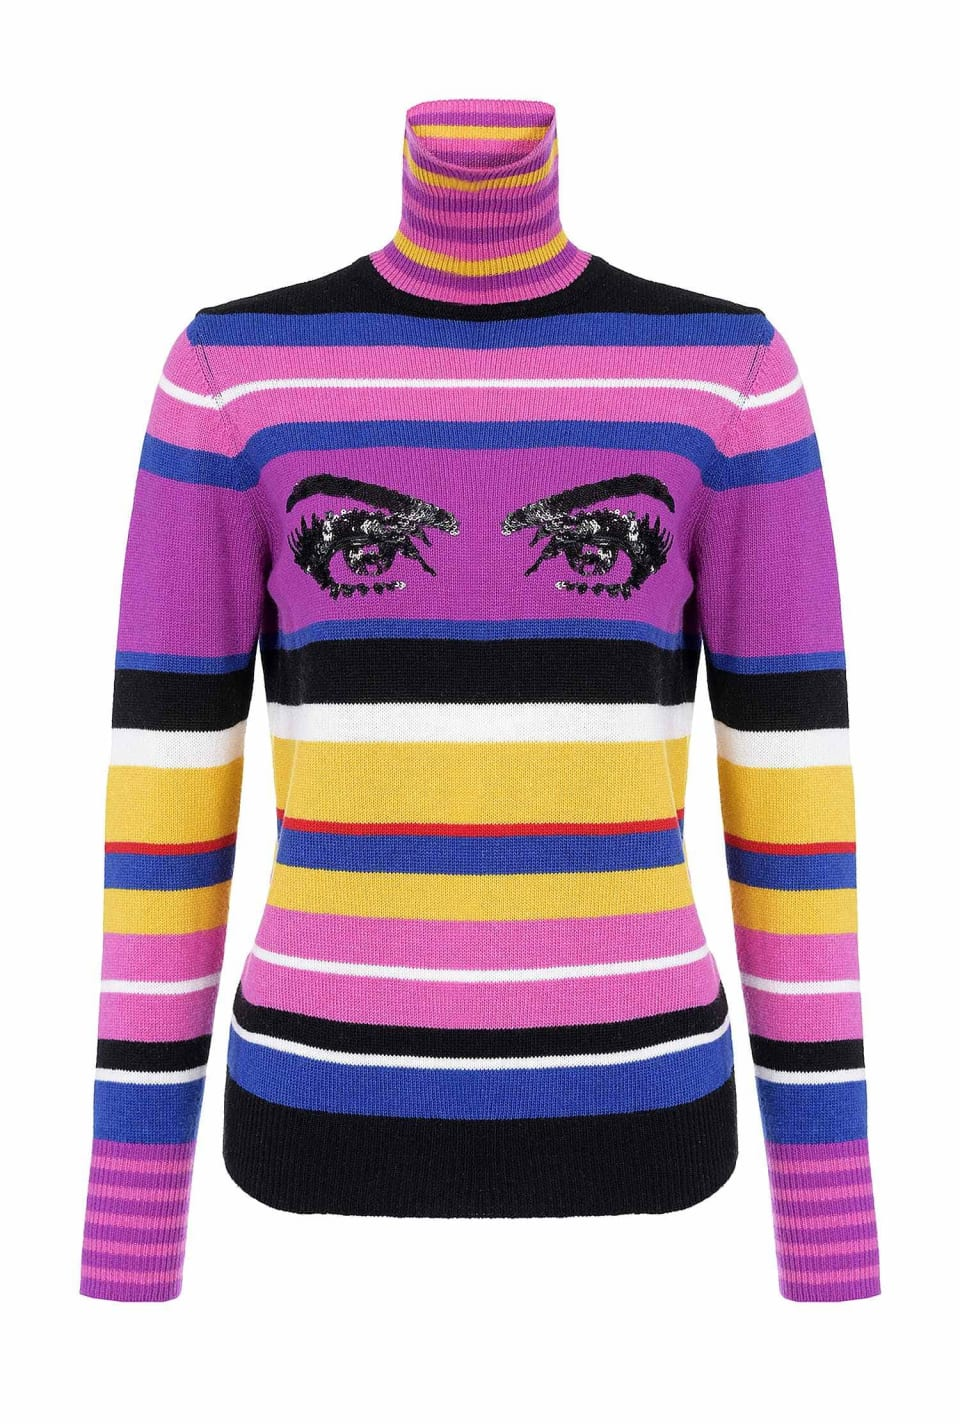 Striped turtleneck pullover with eyes